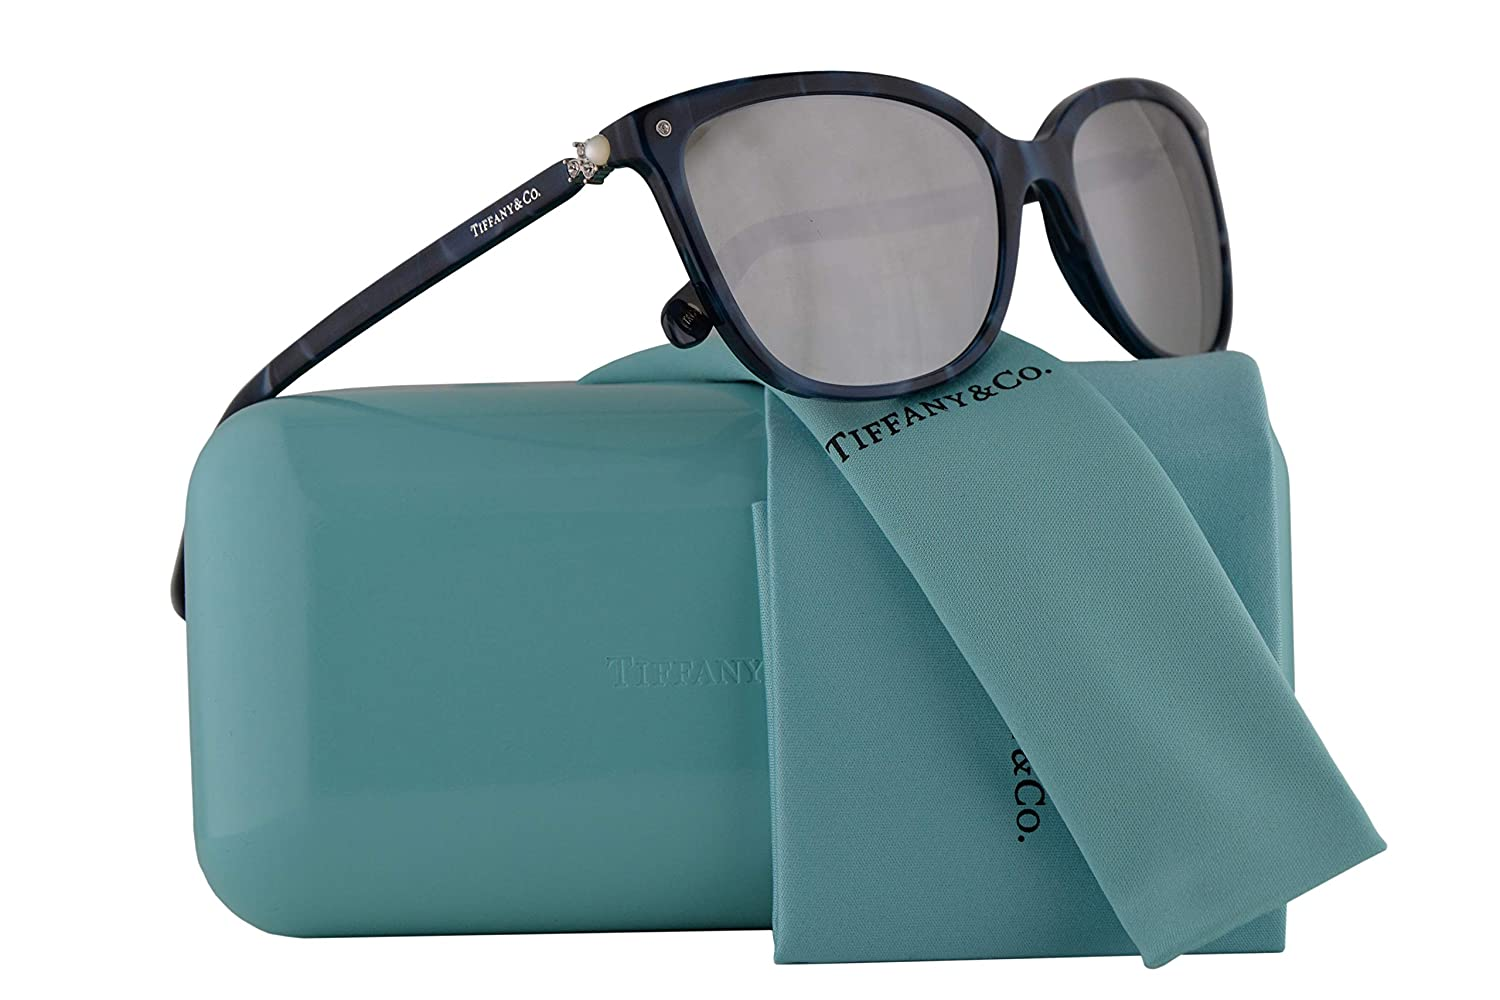 4fd0aa1de0c Tiffany   Co. TF4105HB Sunglasses Blue Shell w Light Grey Mirror Silver  Lens 55mm 82006V TF4105-H-B Tiffany Co. TF 4105HB TF 4105-H-B